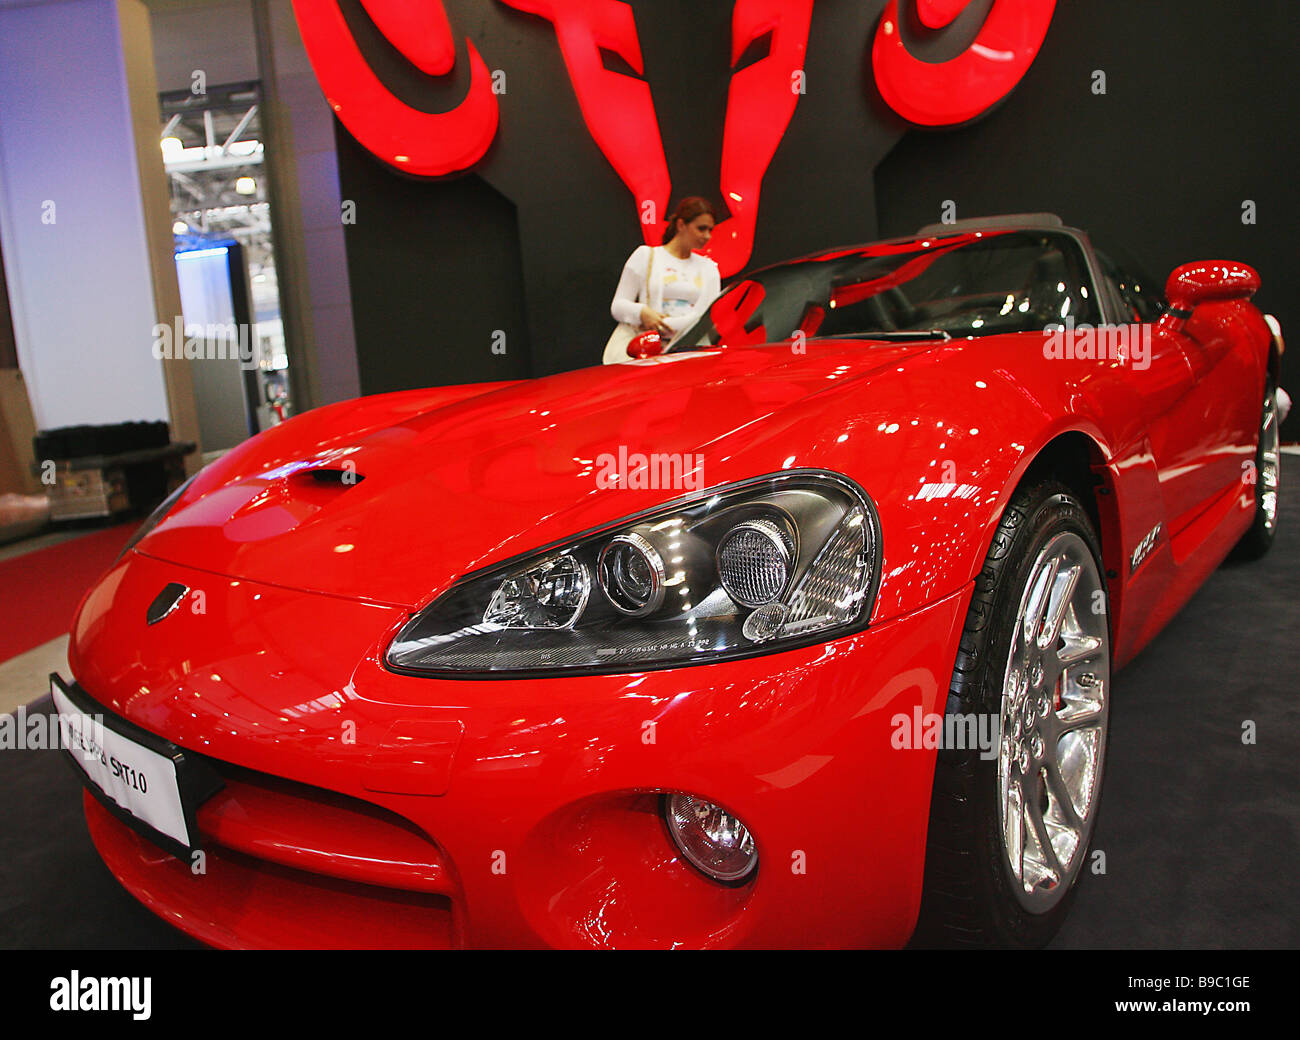 The Dodge Viper SRT 10 on display at the 2nd International Motor Show Interauto at the Crocus Expo center - Stock Image